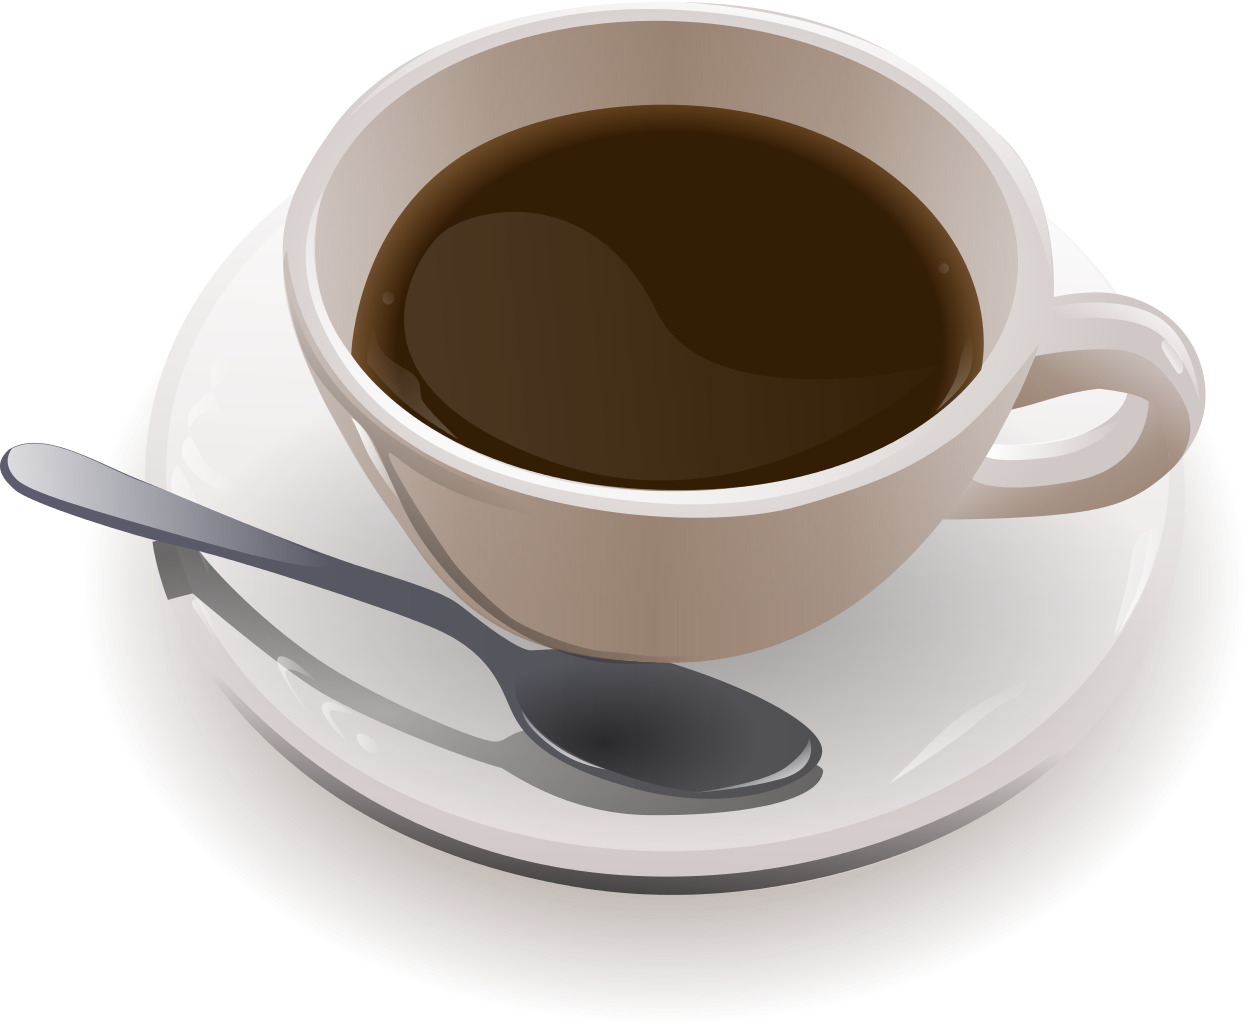 file cup coffee simple svg wikipedia #12640